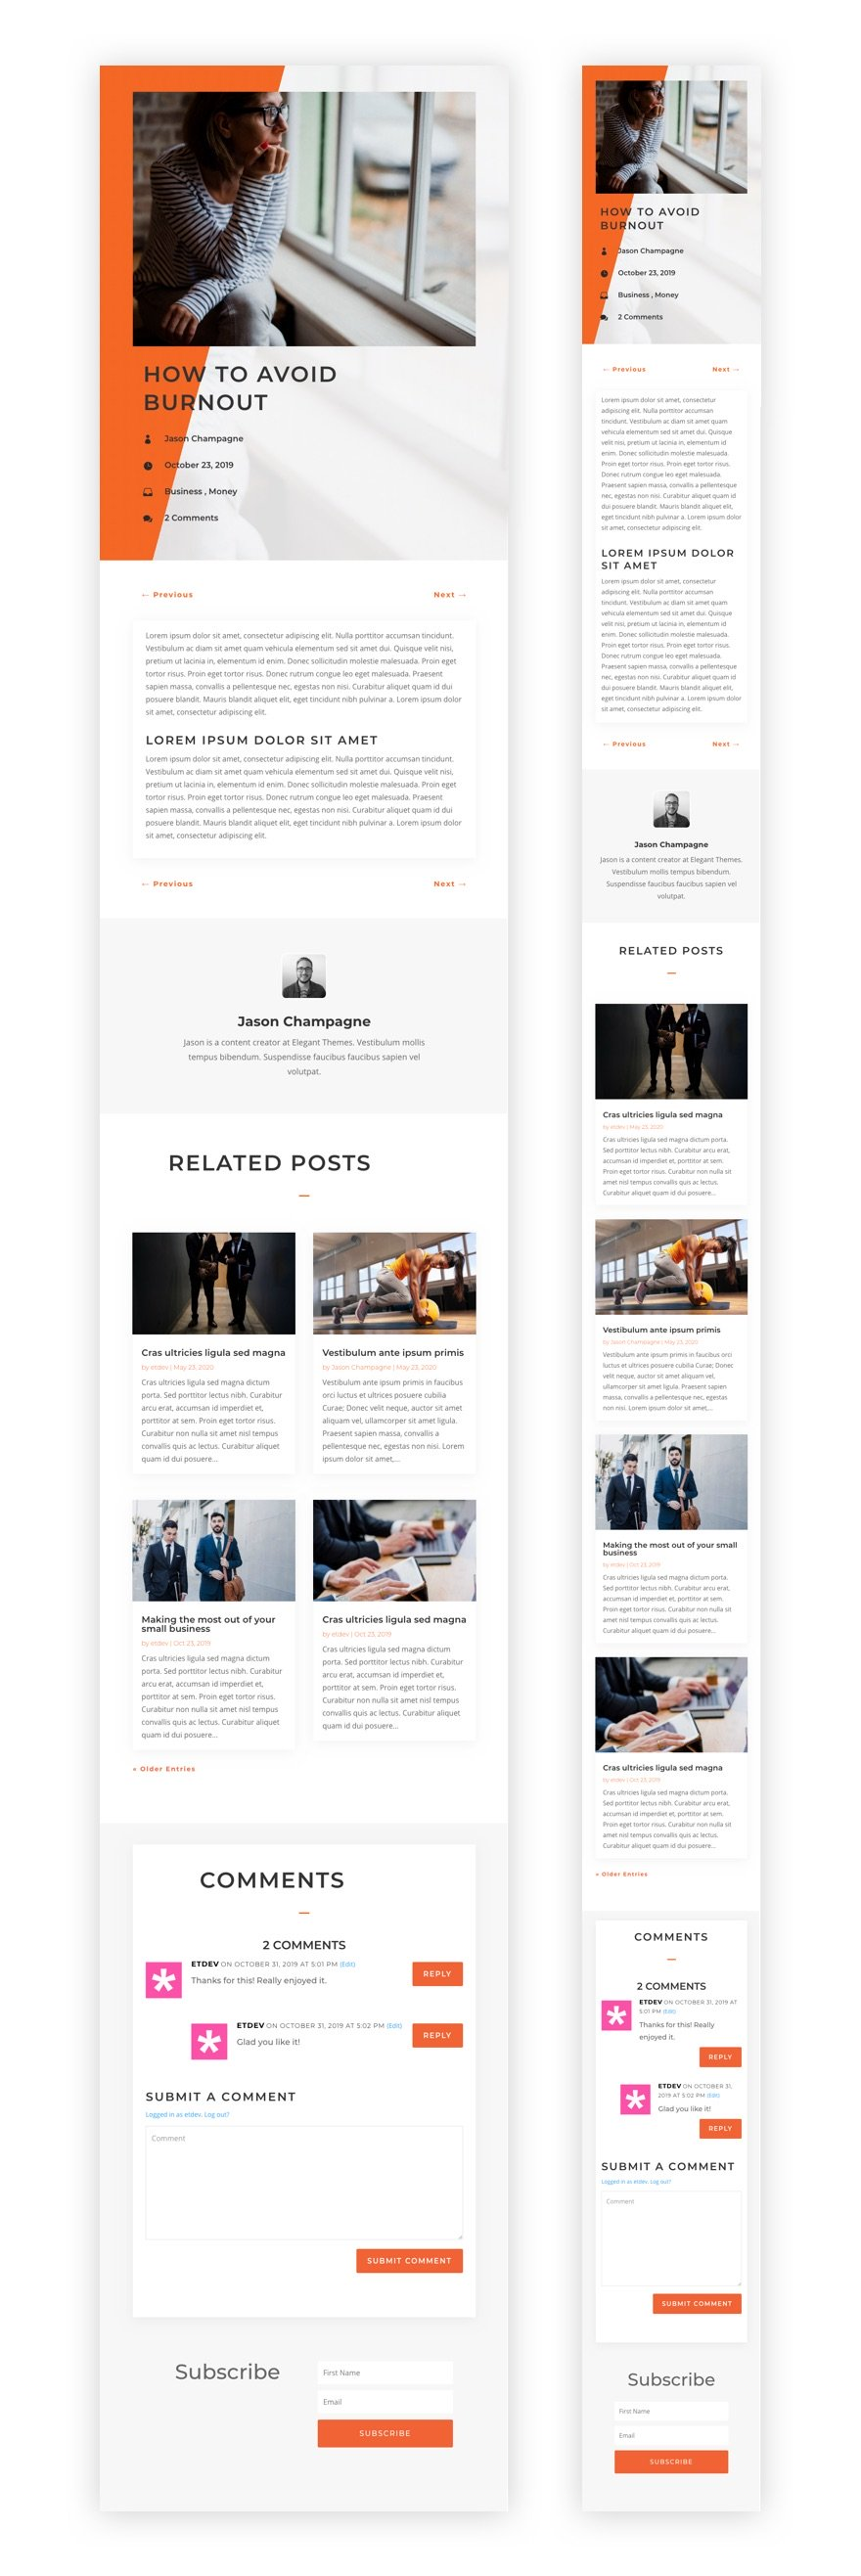 download-a-free-blog-post-template-for-divis-copywriter-layout-pack-1 Download a FREE Blog Post Template for Divi's Copywriter Layout Pack